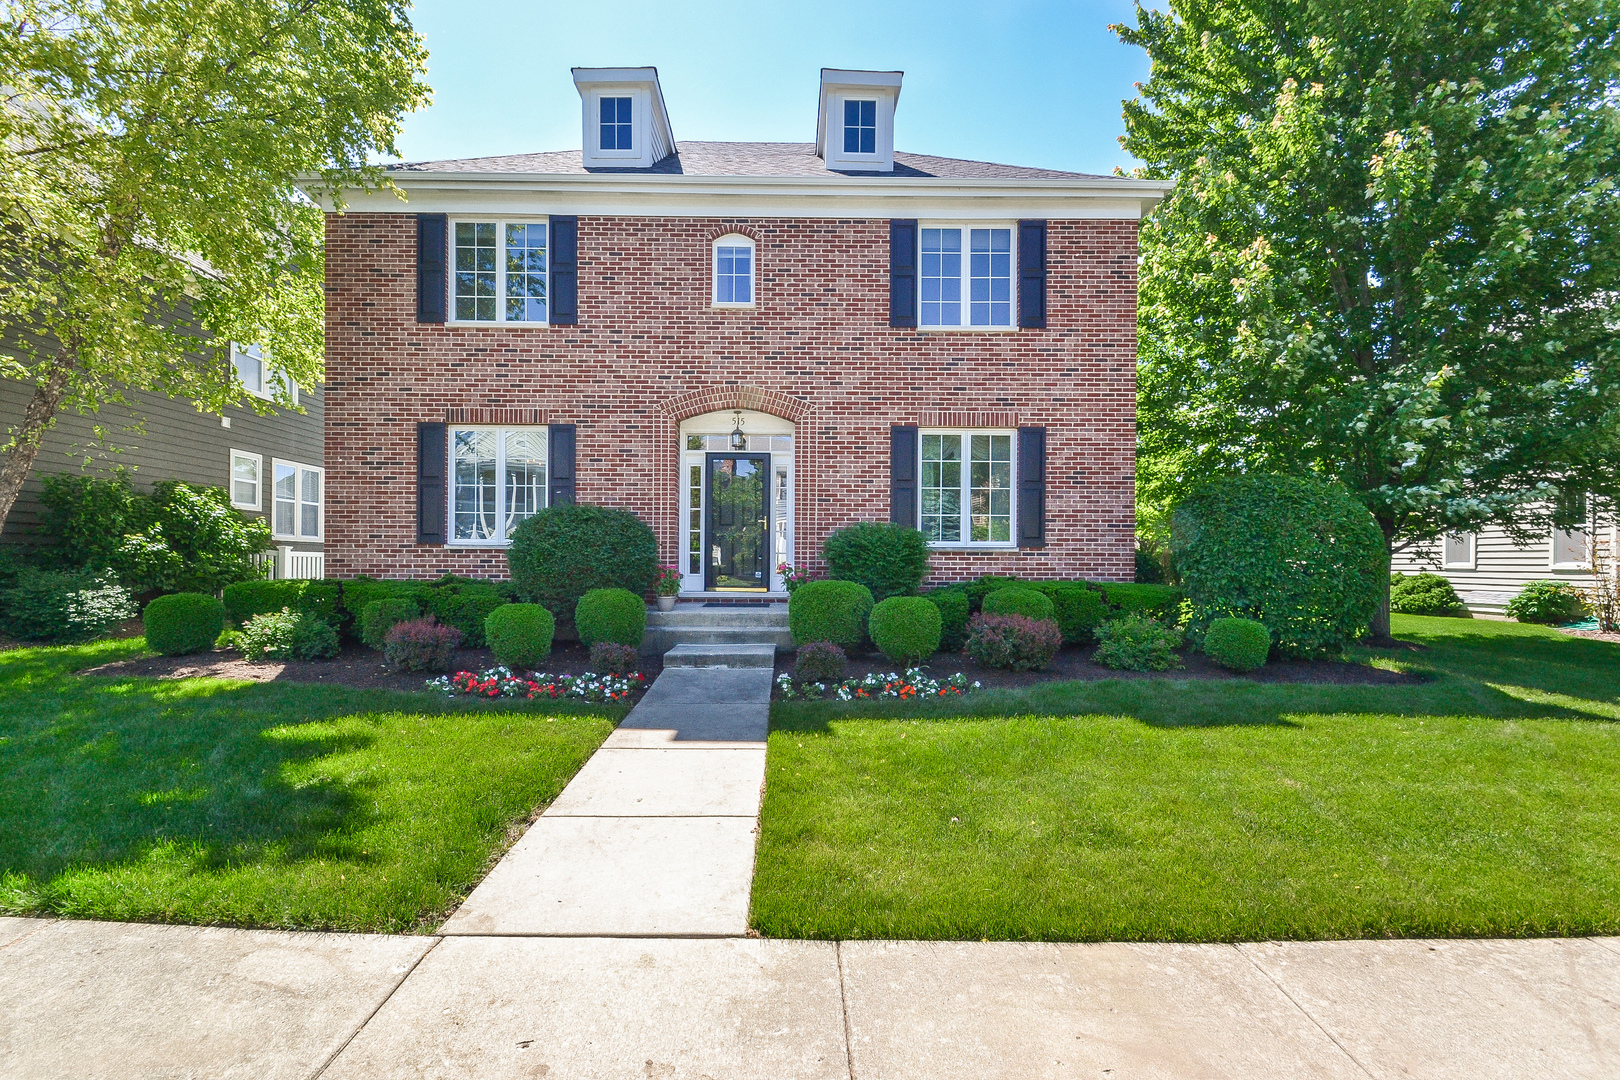 vernon hills single parents Single family homes for sale in vernon hills, il have a median listing price of $382,400 and a price per square foot of $163 there are 137 active single family homes for sale in vernon hills.